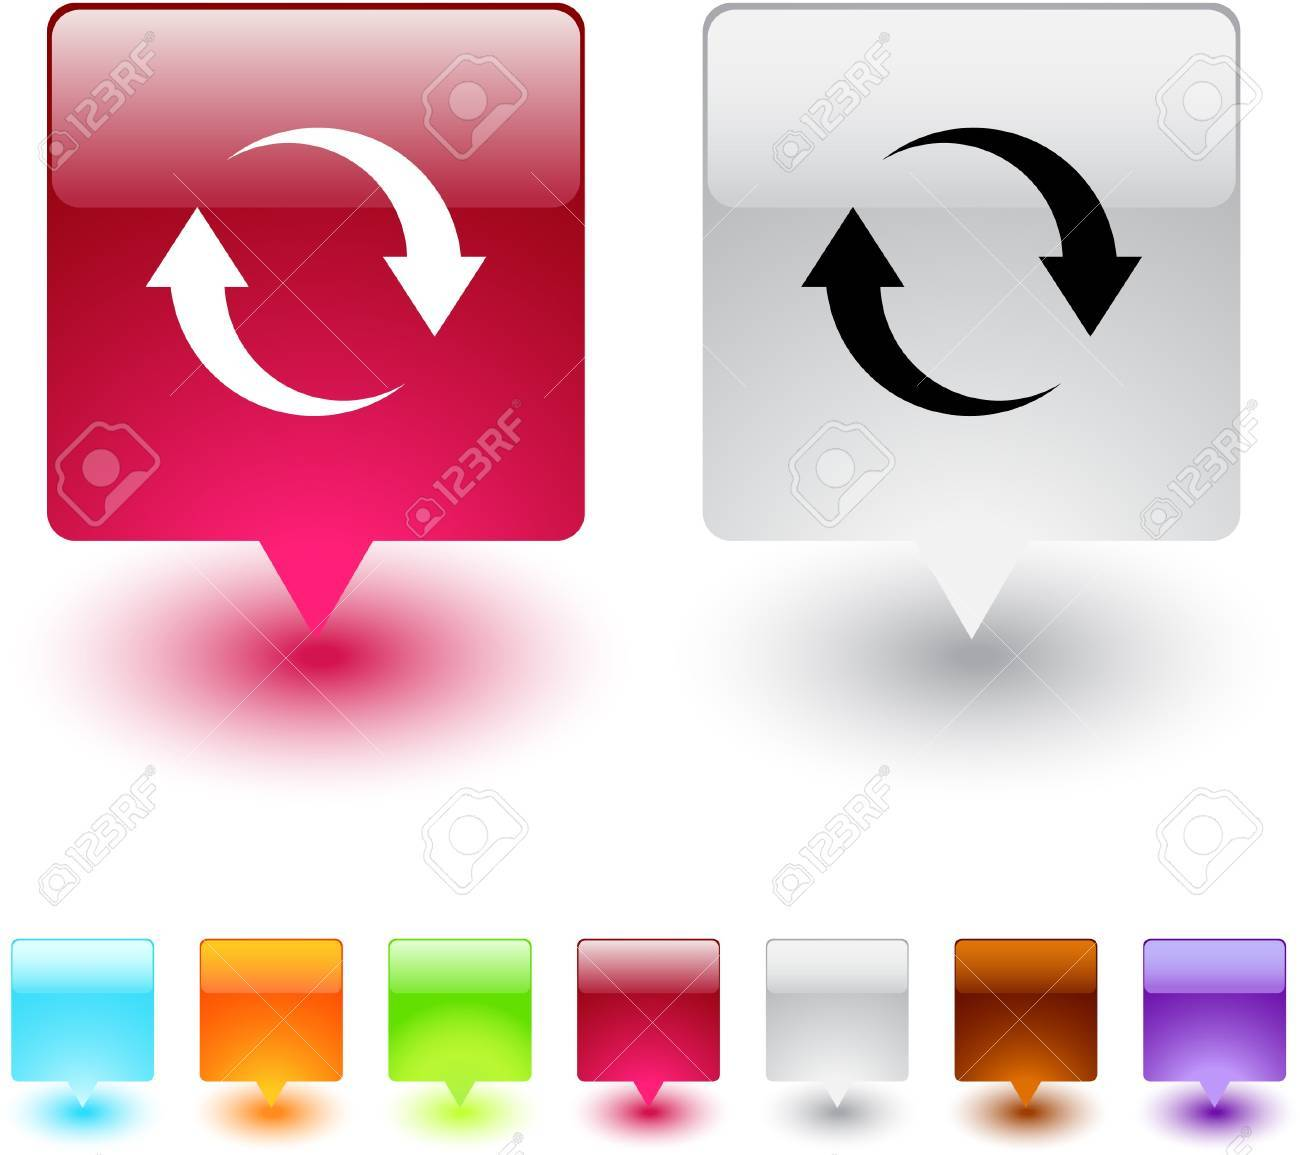 Refresh glossy square web buttons. Stock Vector - 7135043